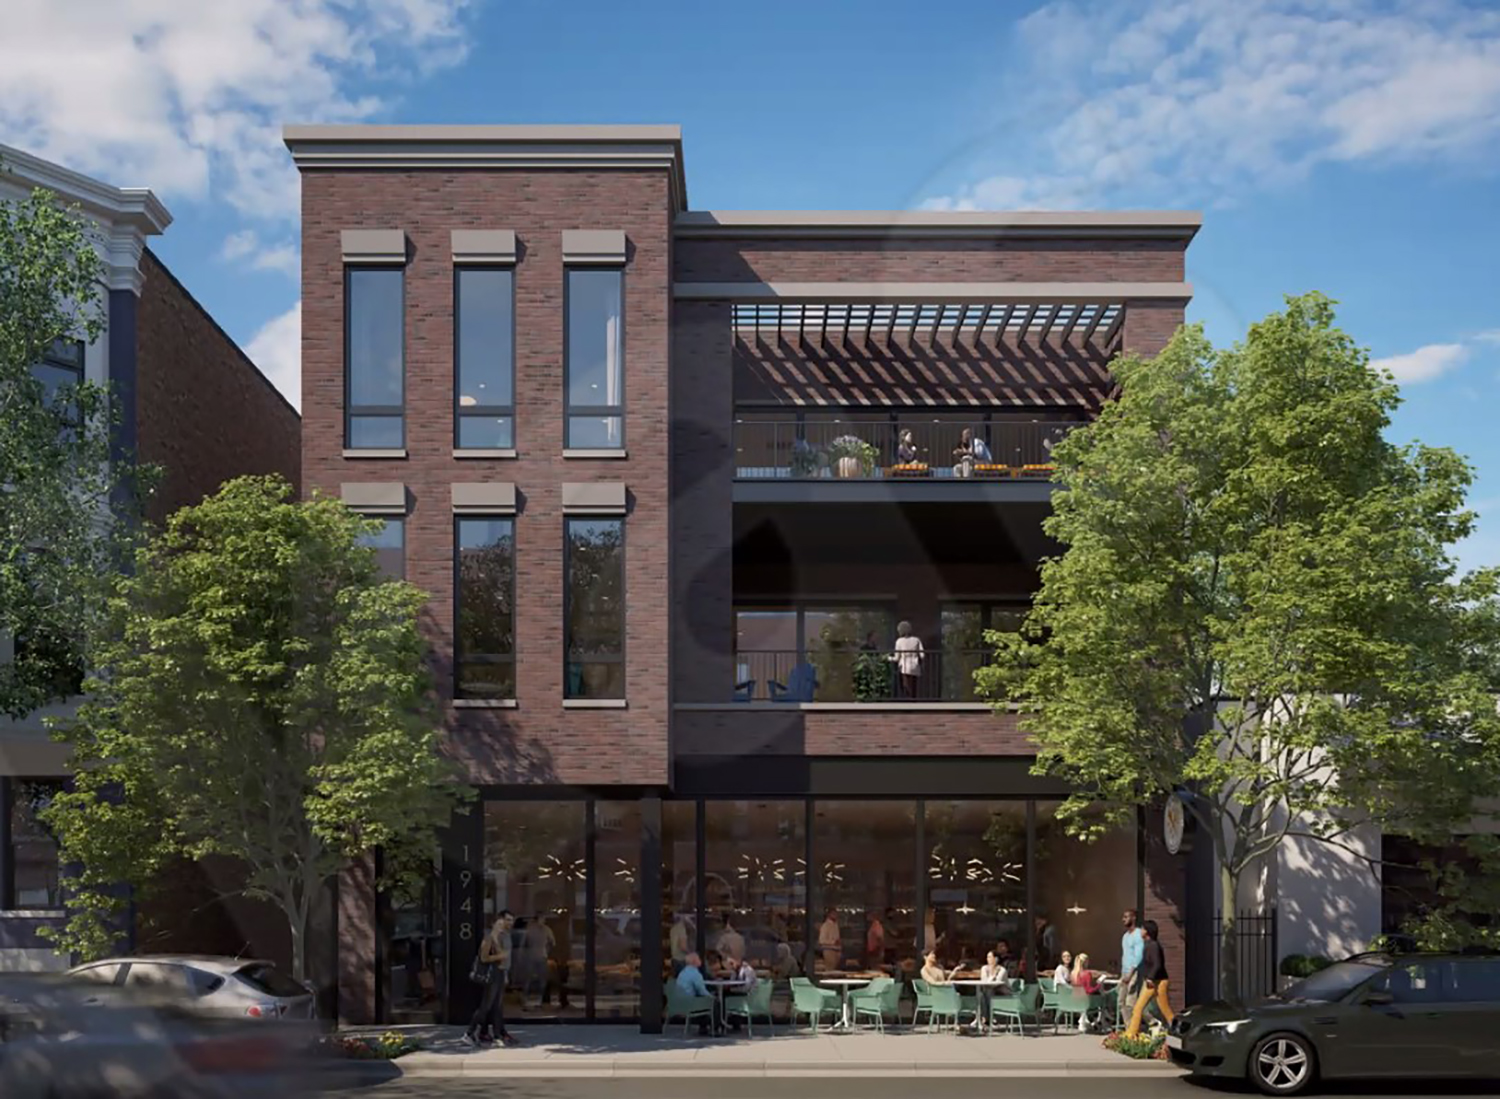 1948 N Halsted Street. Rendering by SPACE Architects + Planners